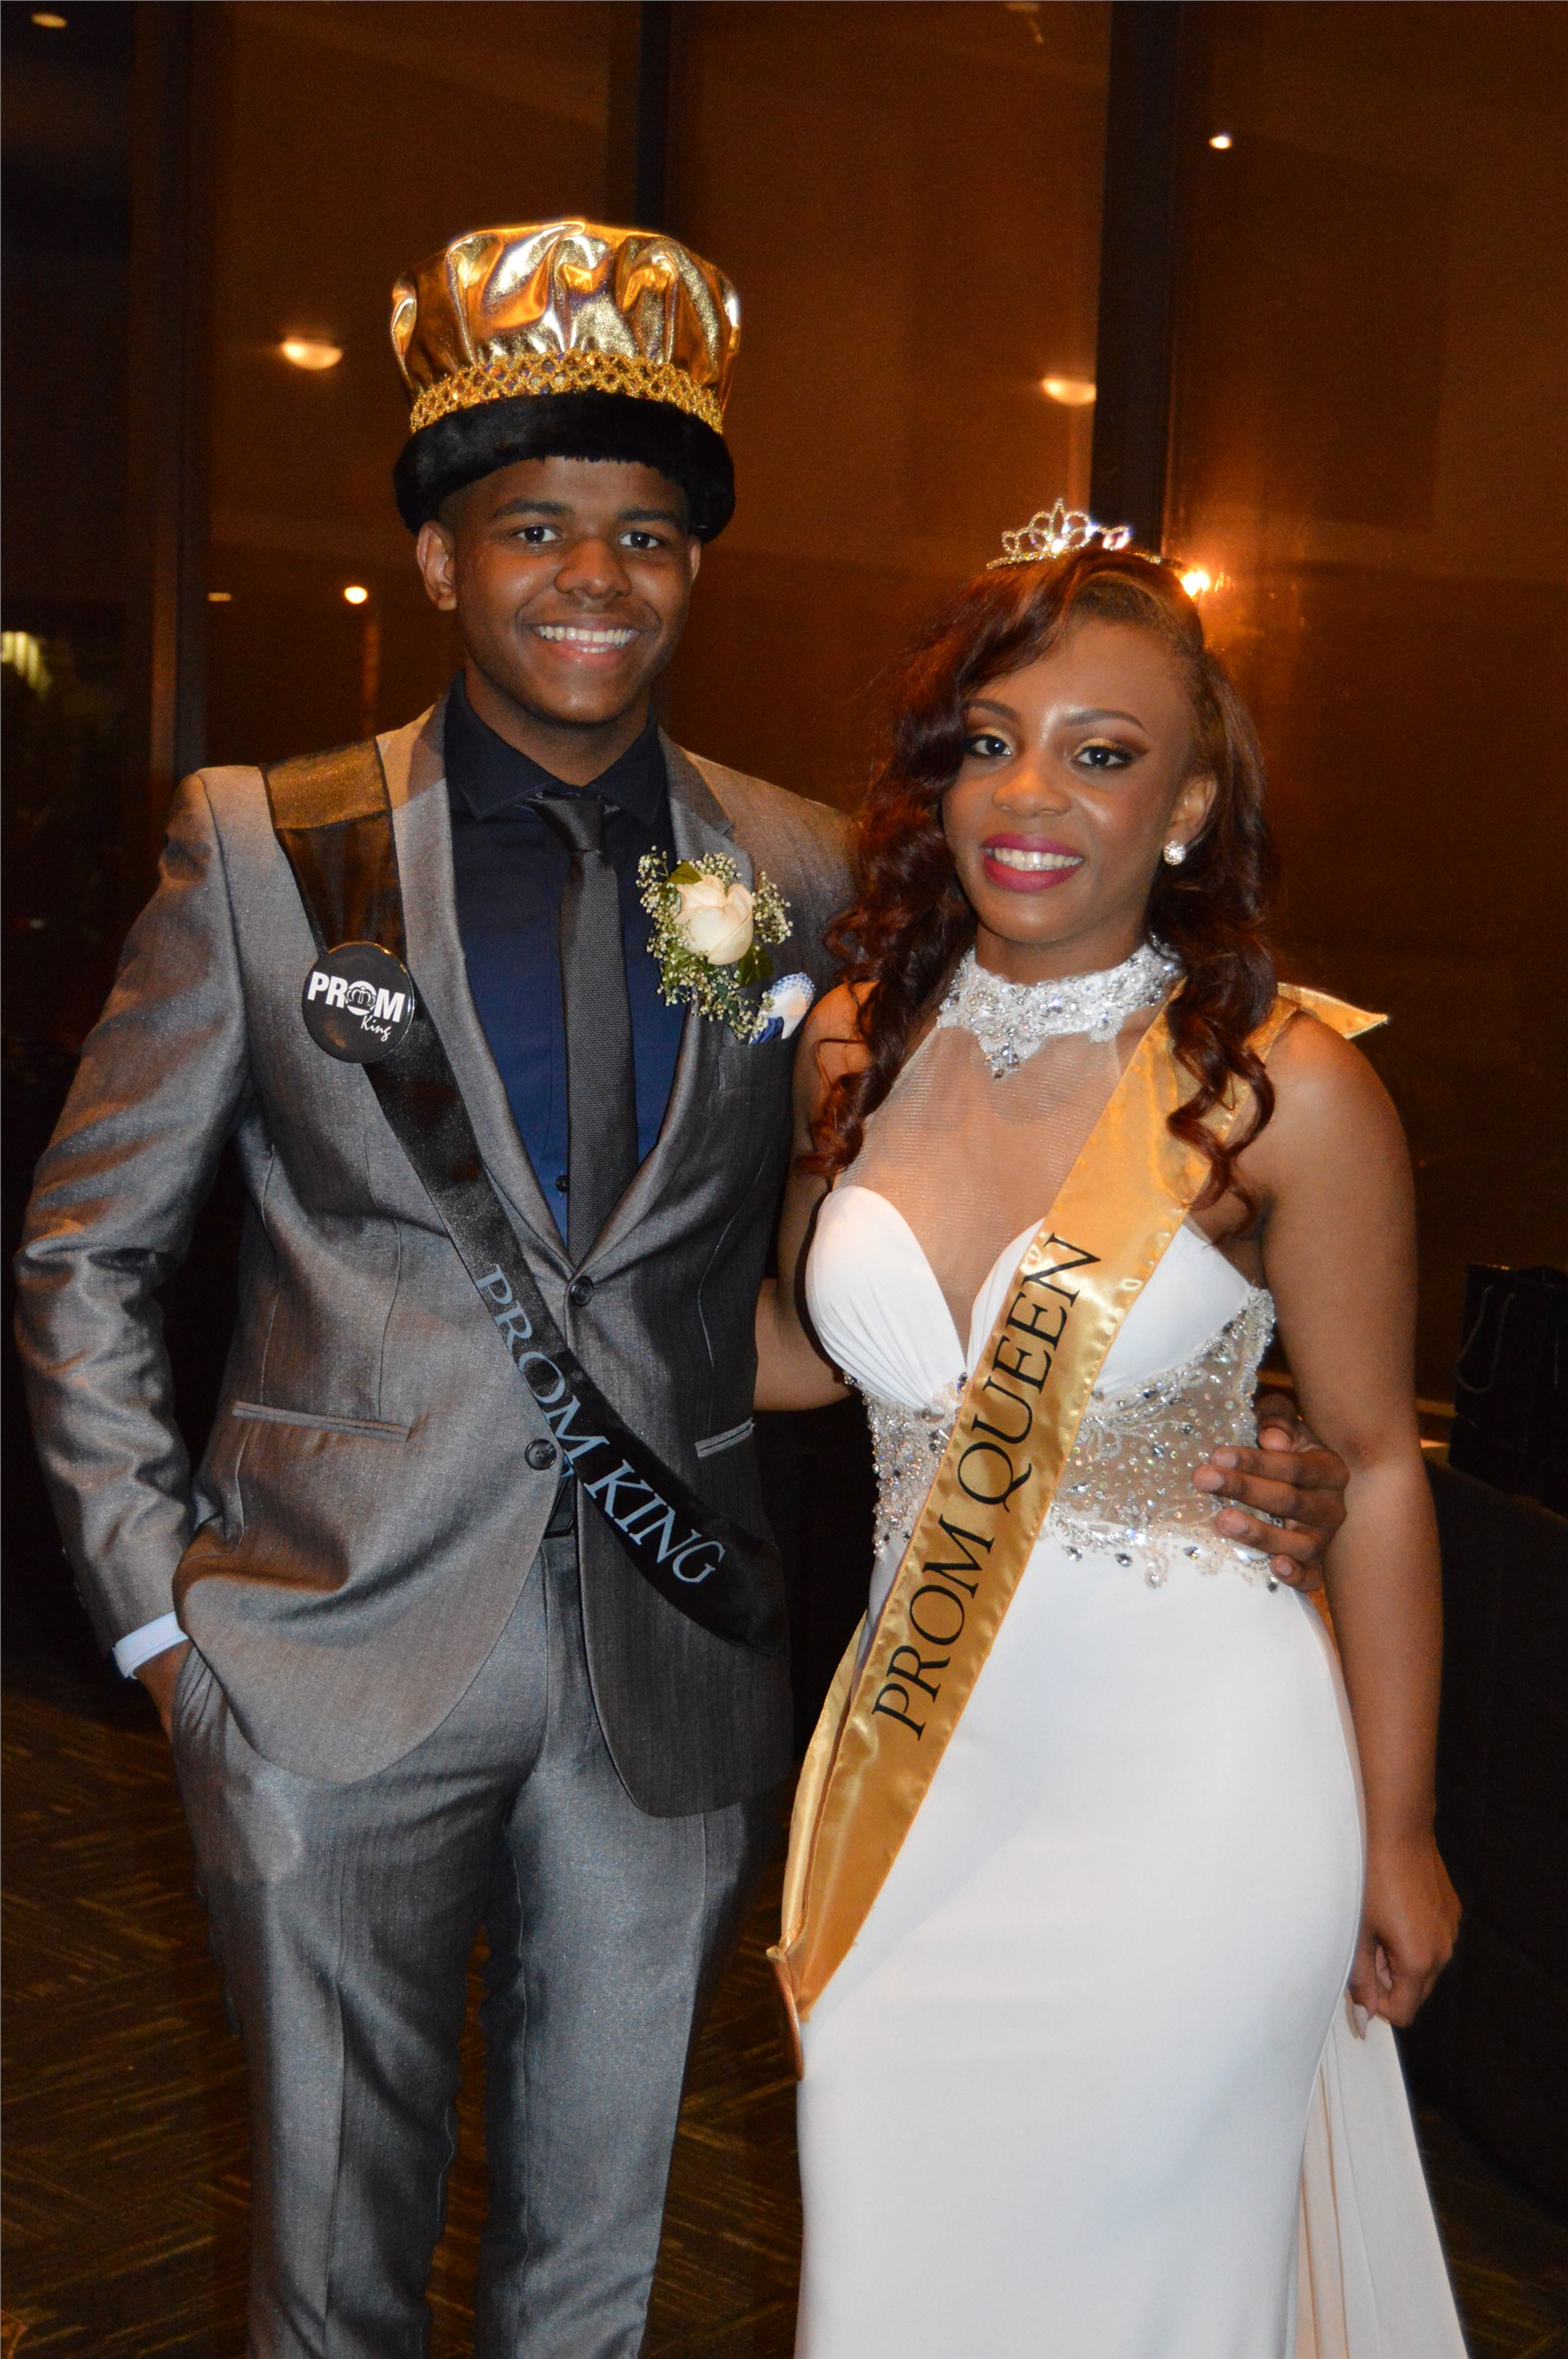 Prom King Sean Ayers and Queen Jazmine Gainer